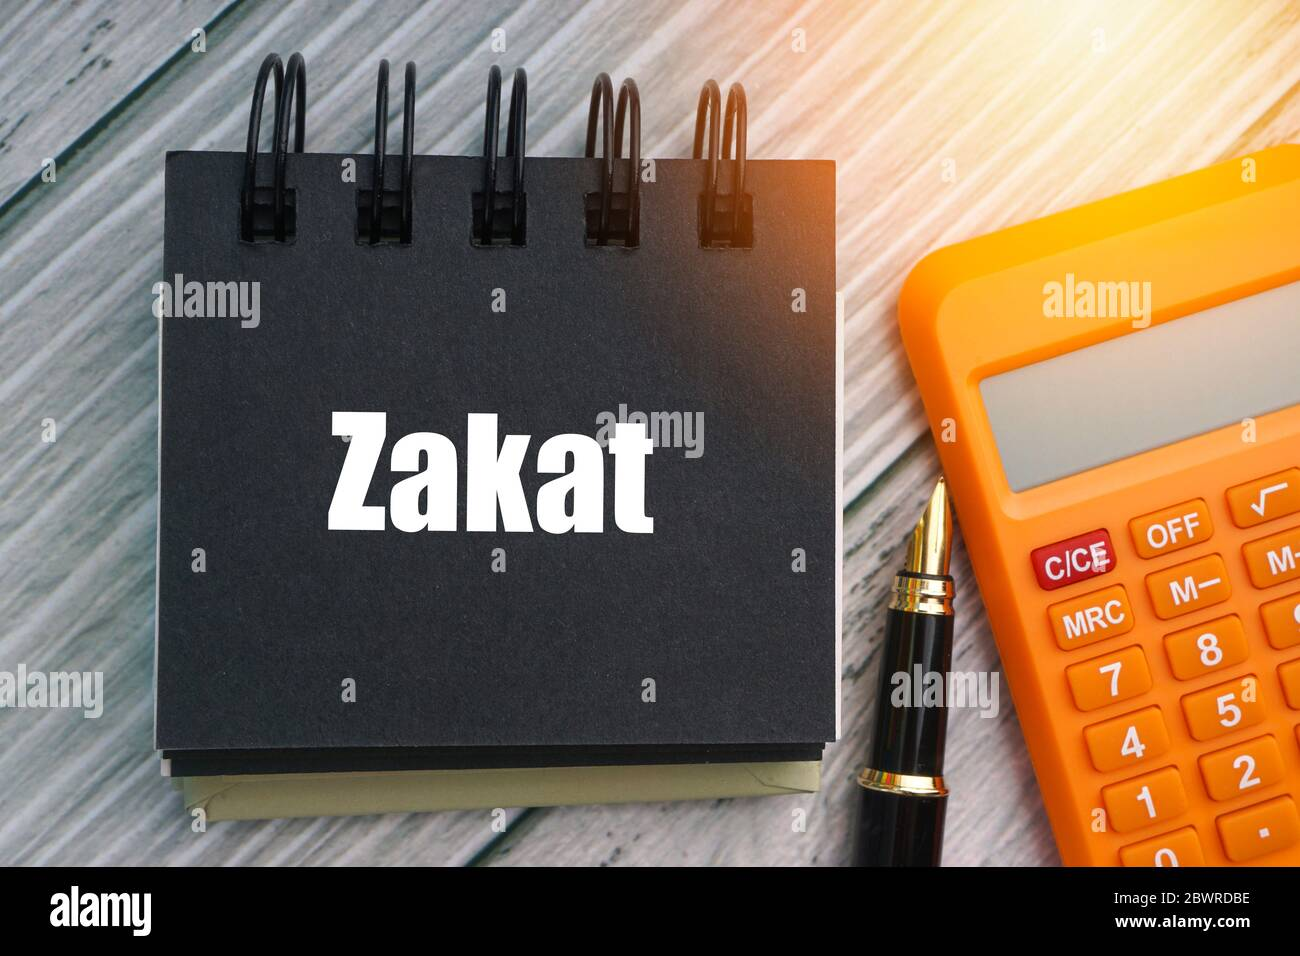 zakat high resolution stock photography and images alamy https www alamy com zakat or islamic tax text with fountain pen calculator and notepad on wooden background zakat is a form of alms giving treated in islam as a religi image360089170 html